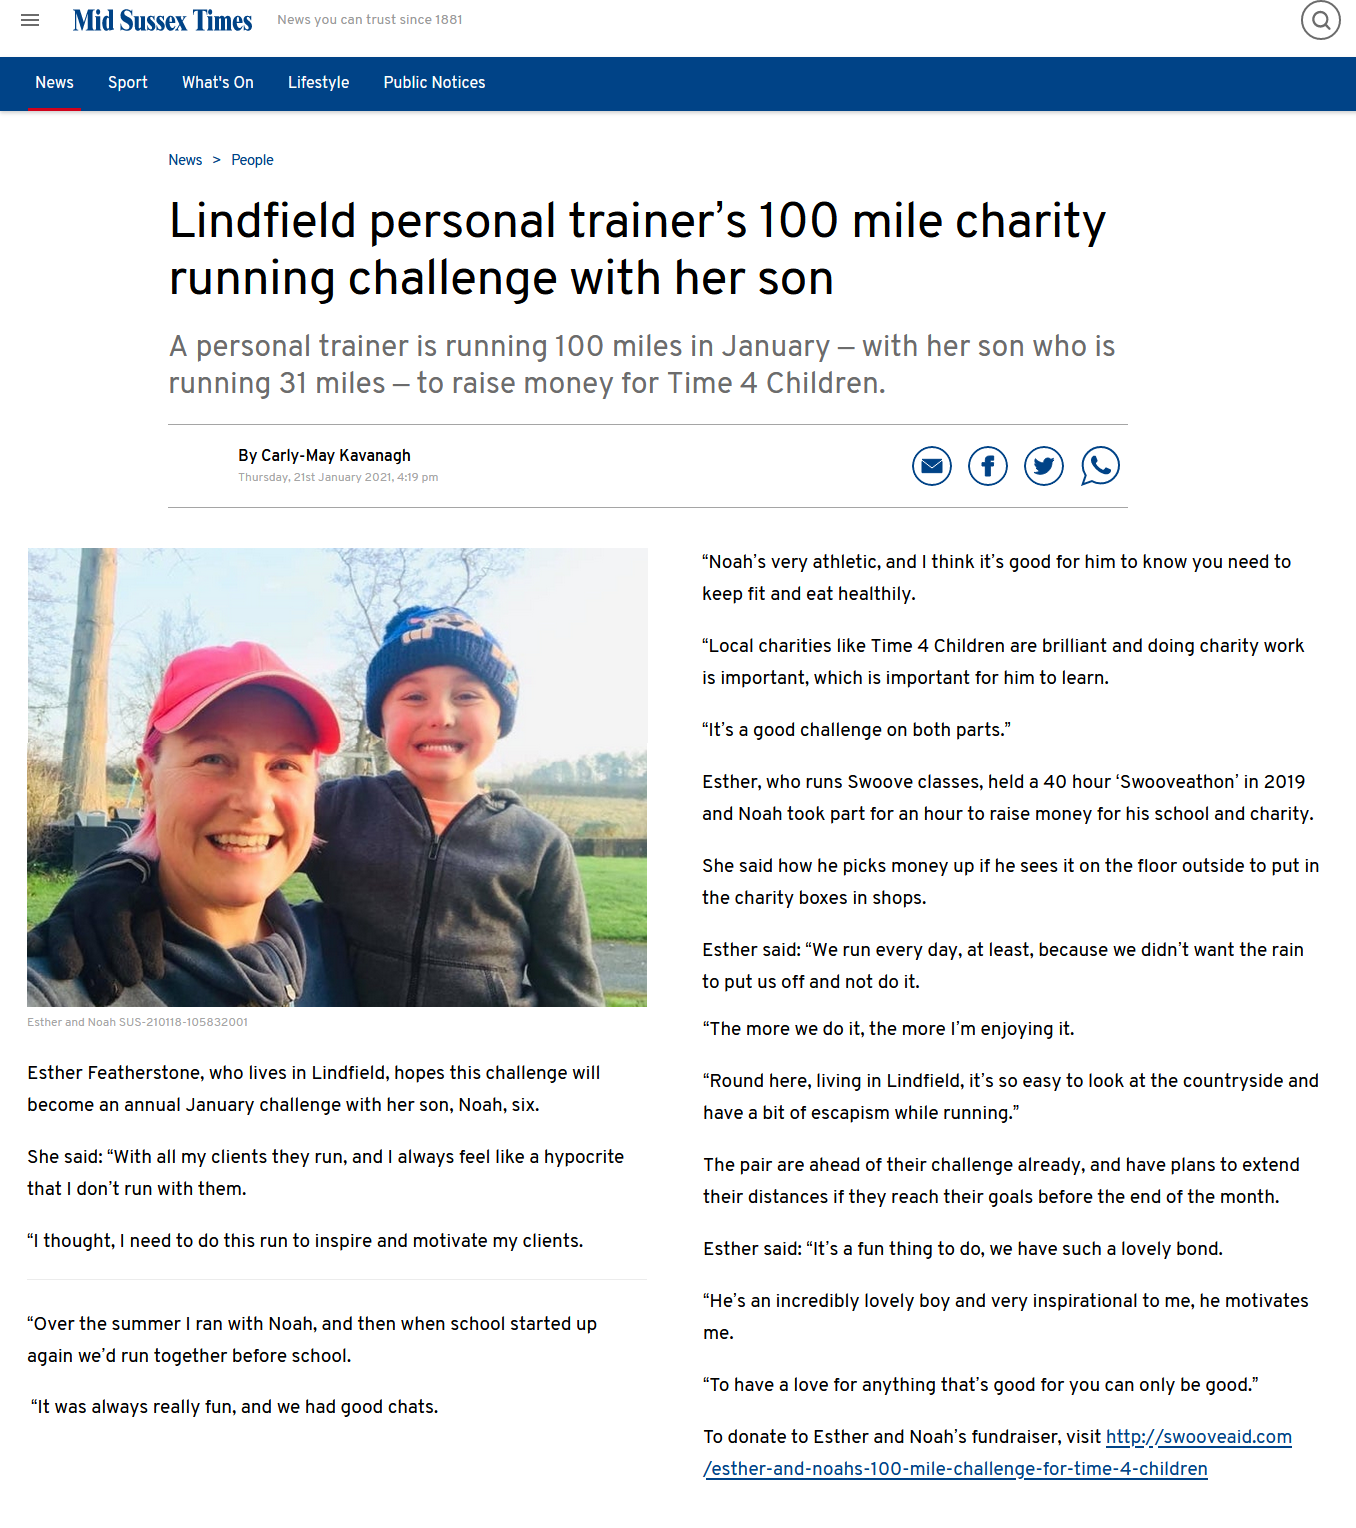 esther-and-noah-100-mile-challenge